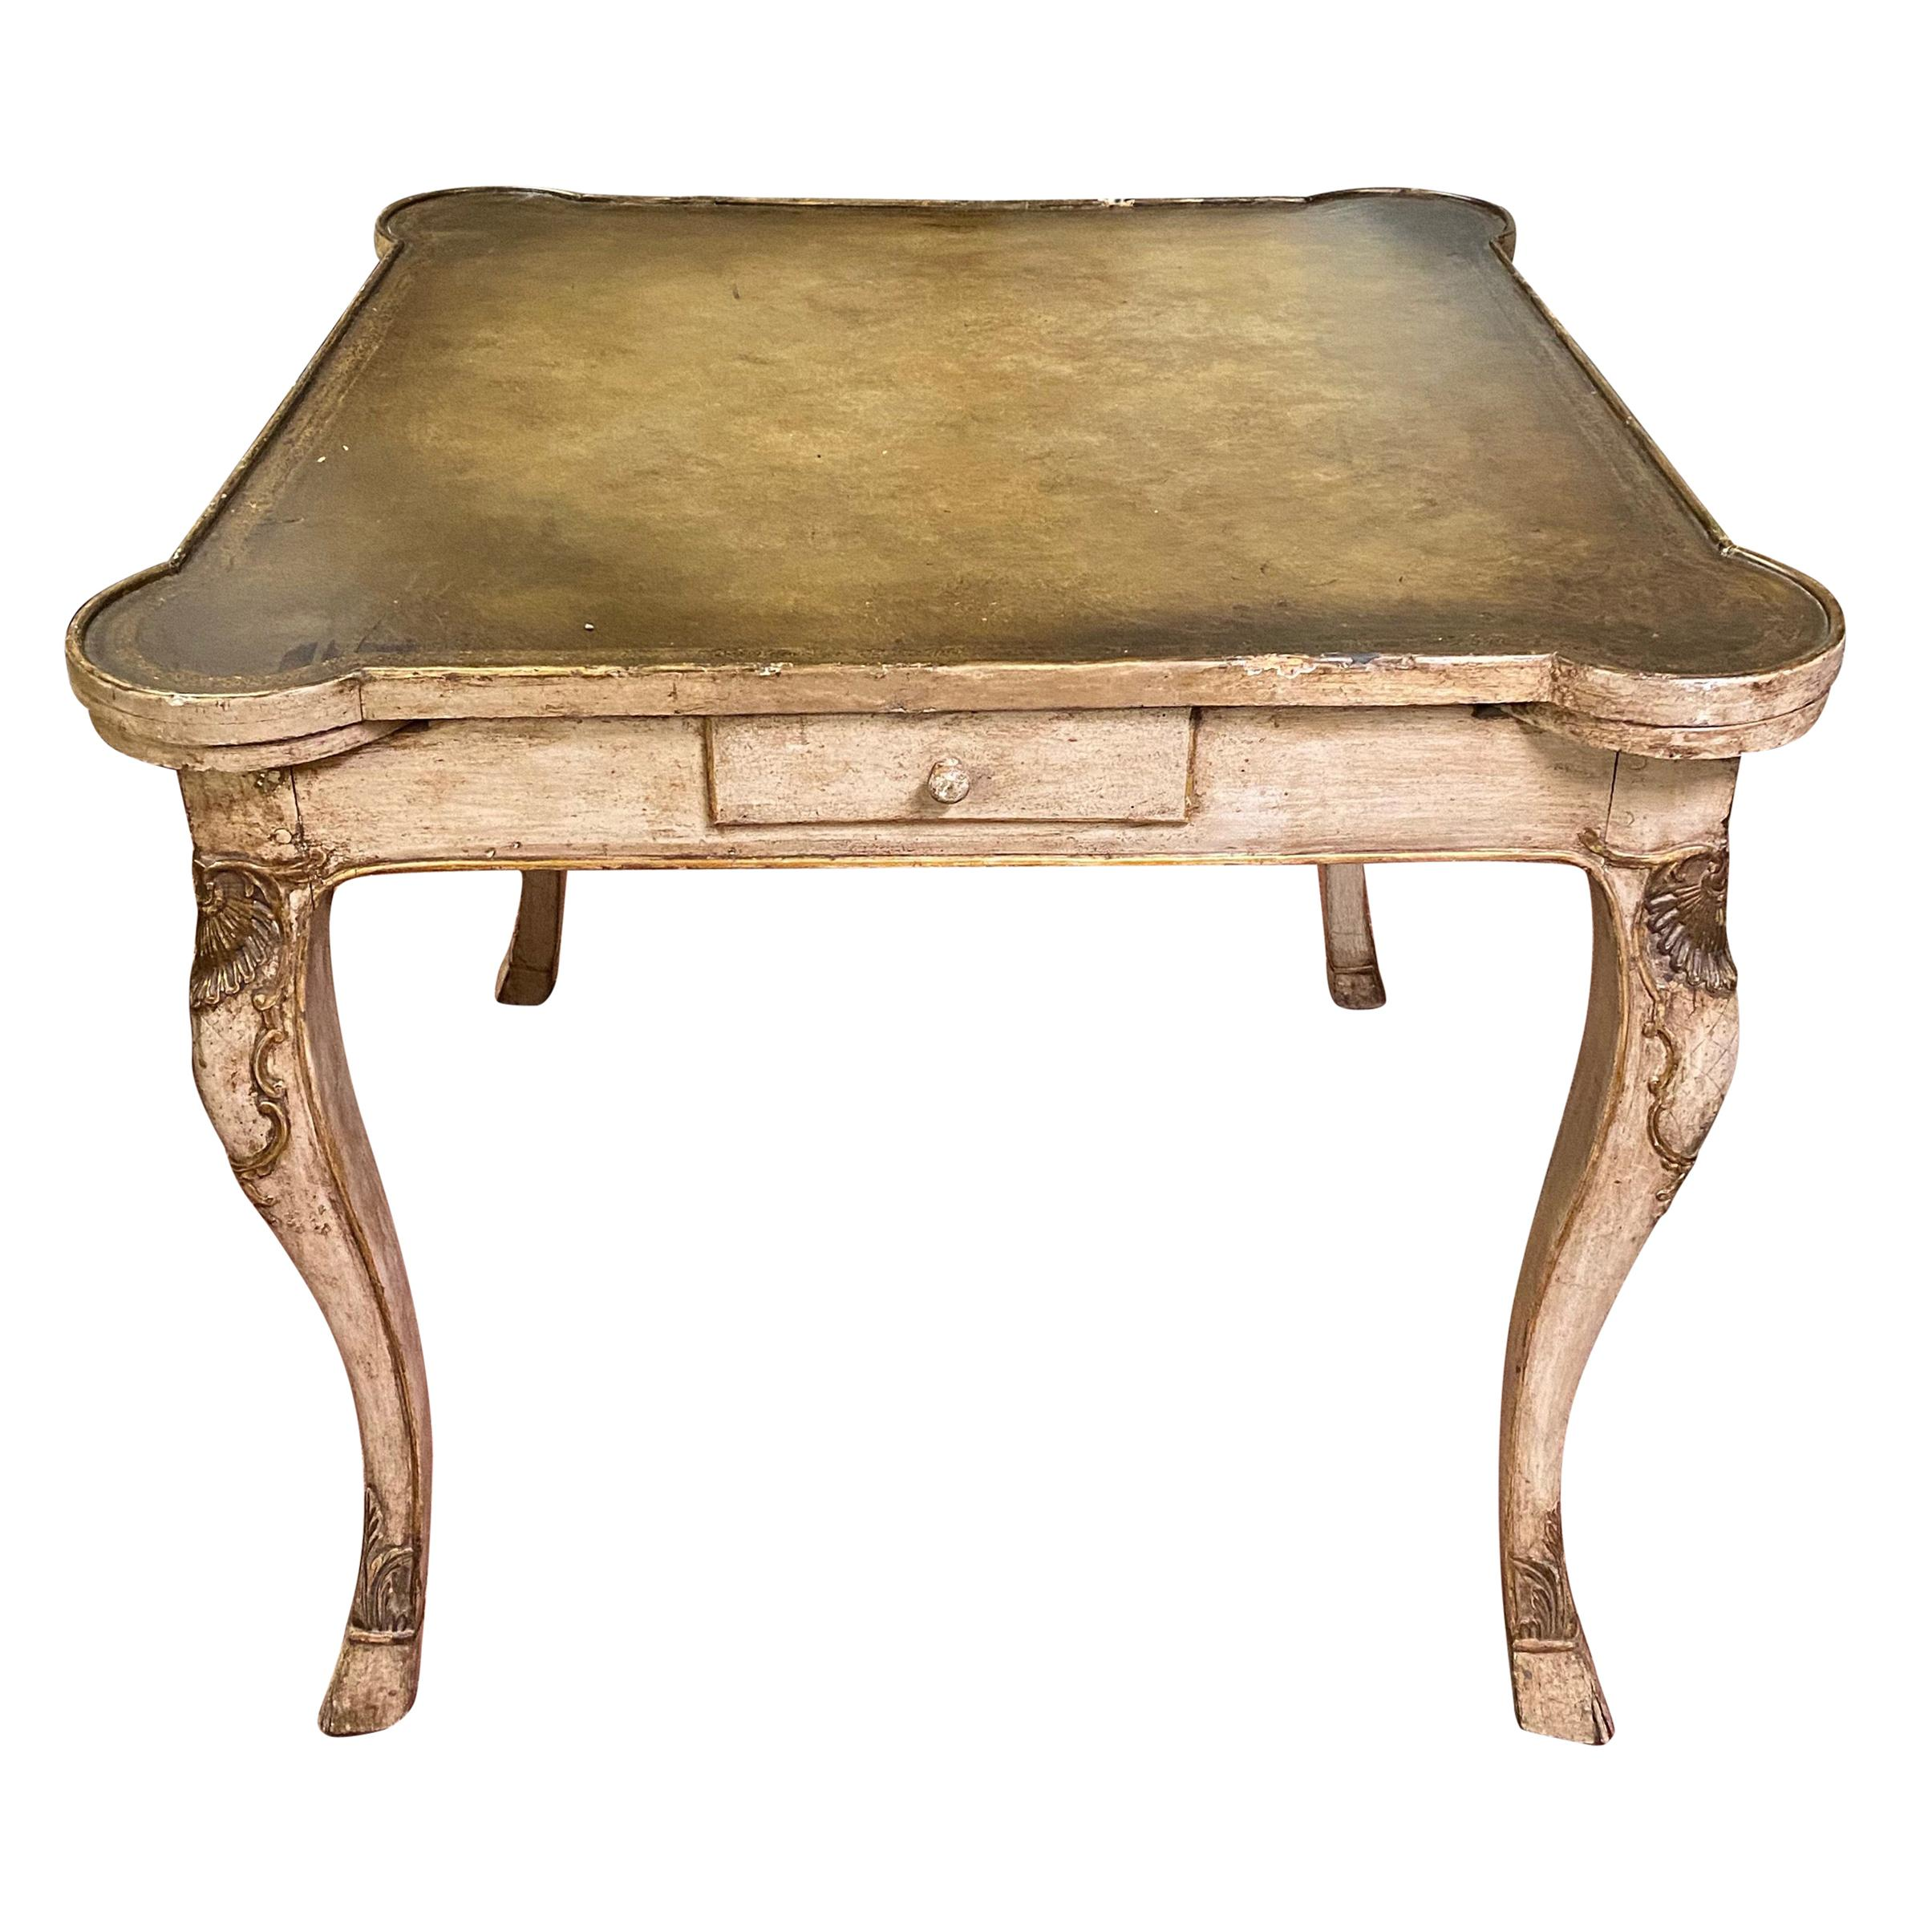 Early 20th Century Carved French Games Table with Leather Top